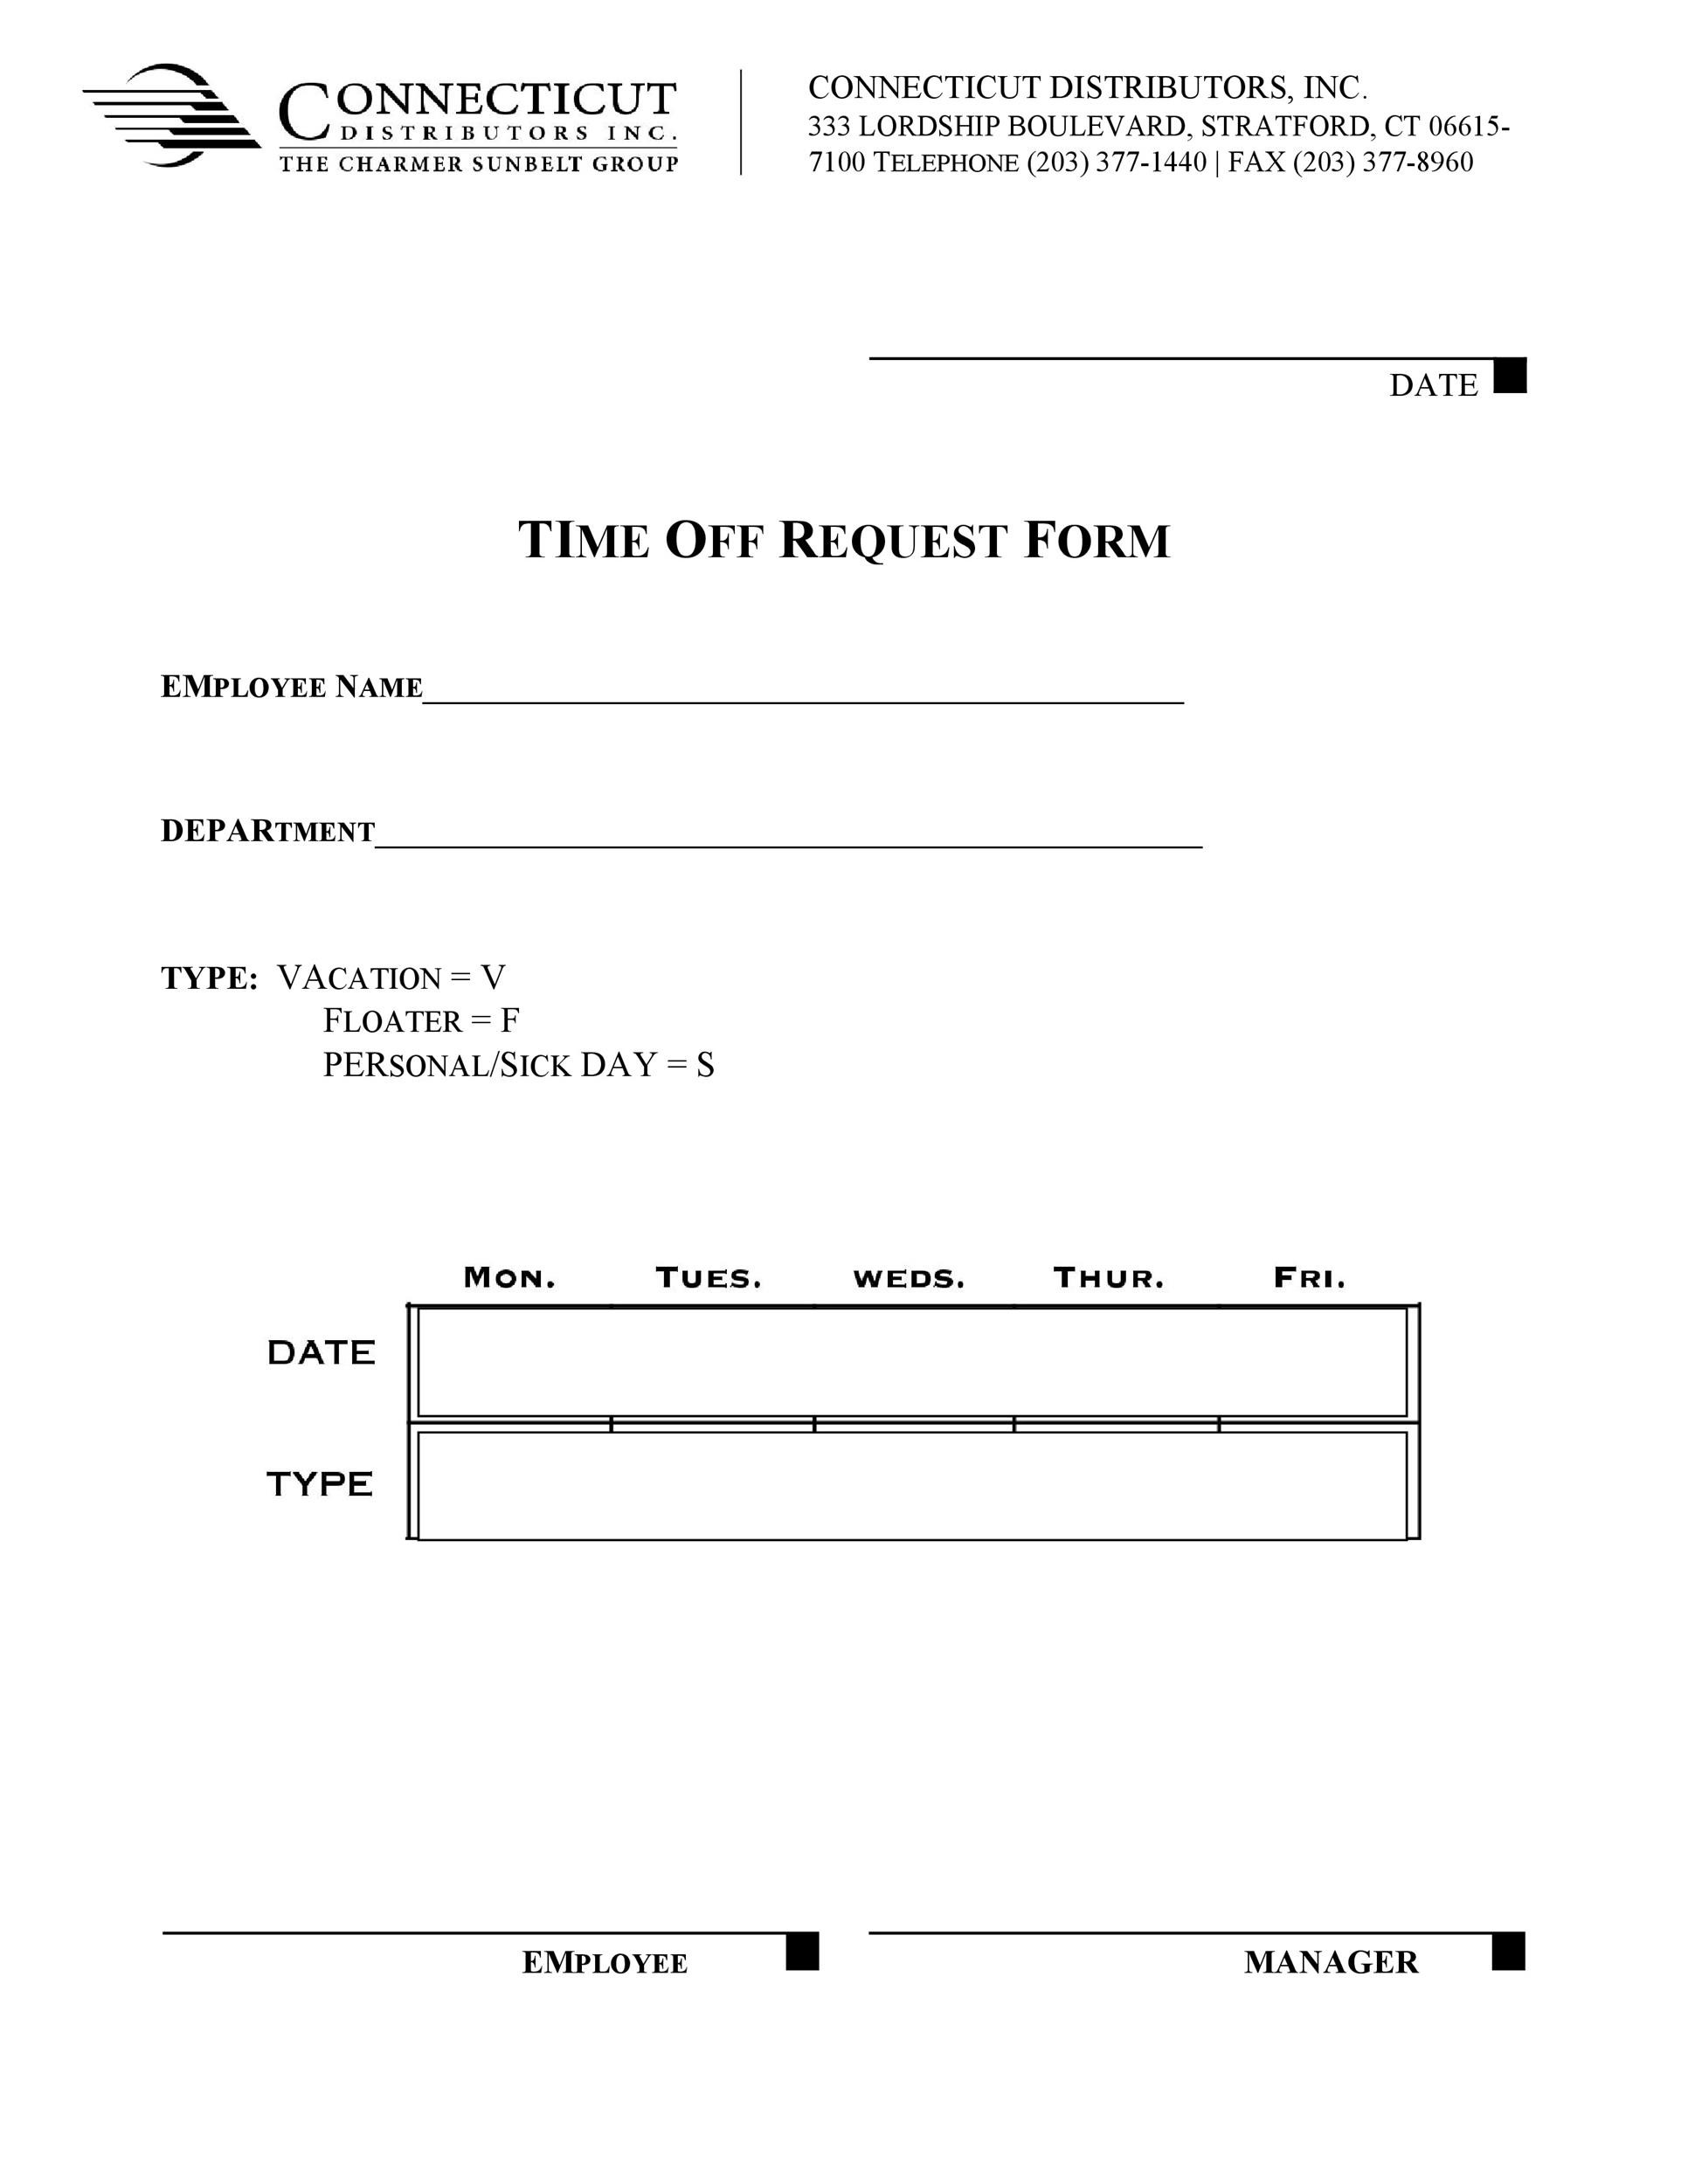 Free time off request form template 25